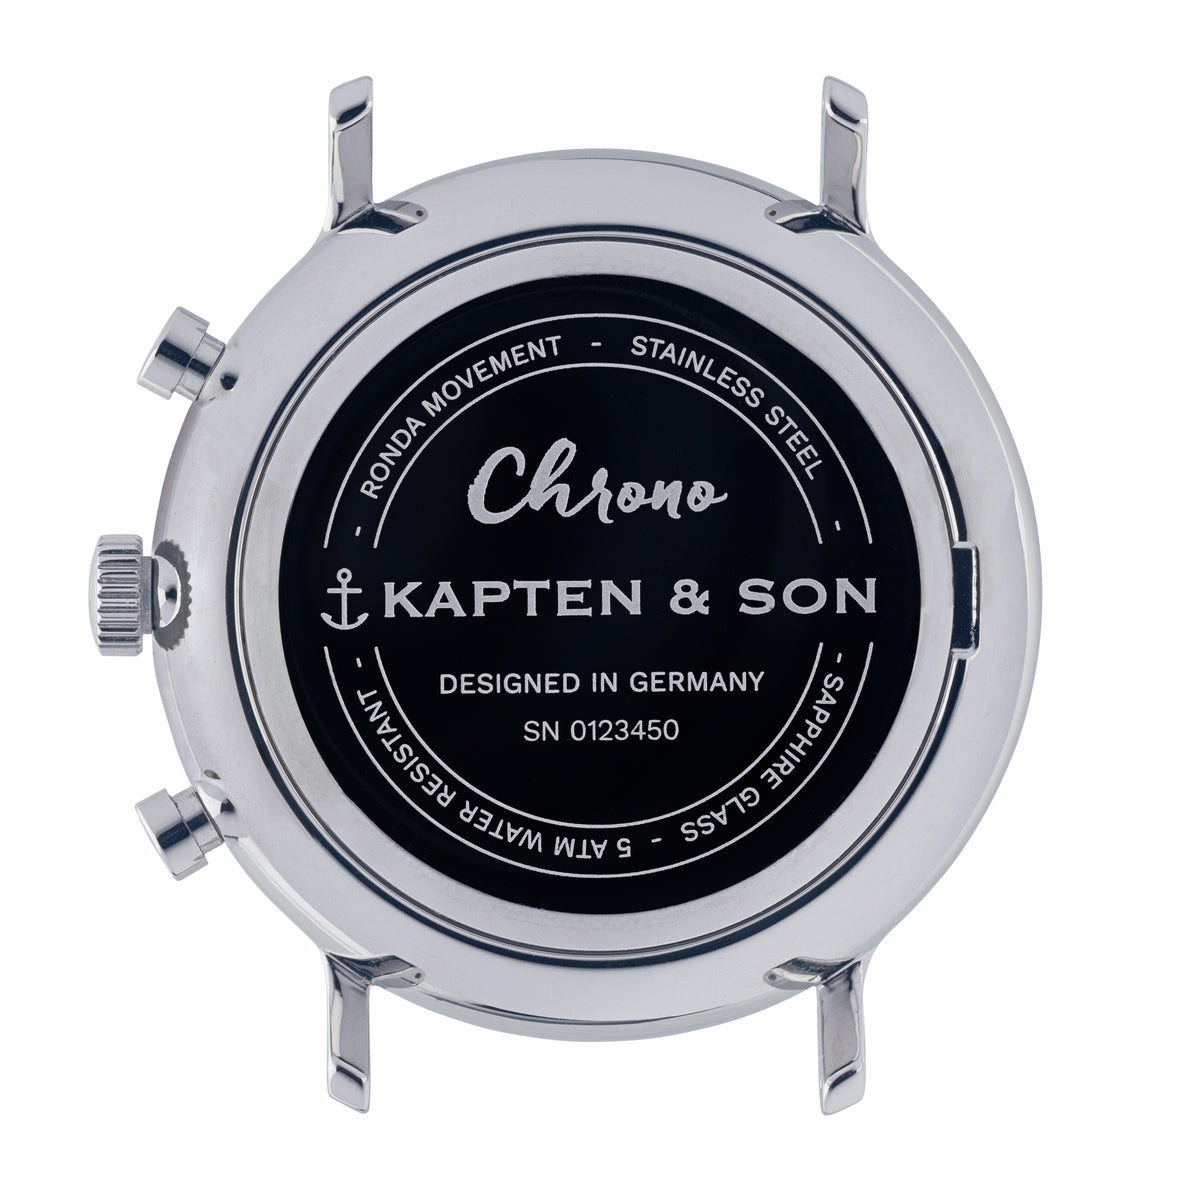 "Chrono Silver ""Bicolor Steel"" - kapten & Son - South Africa"